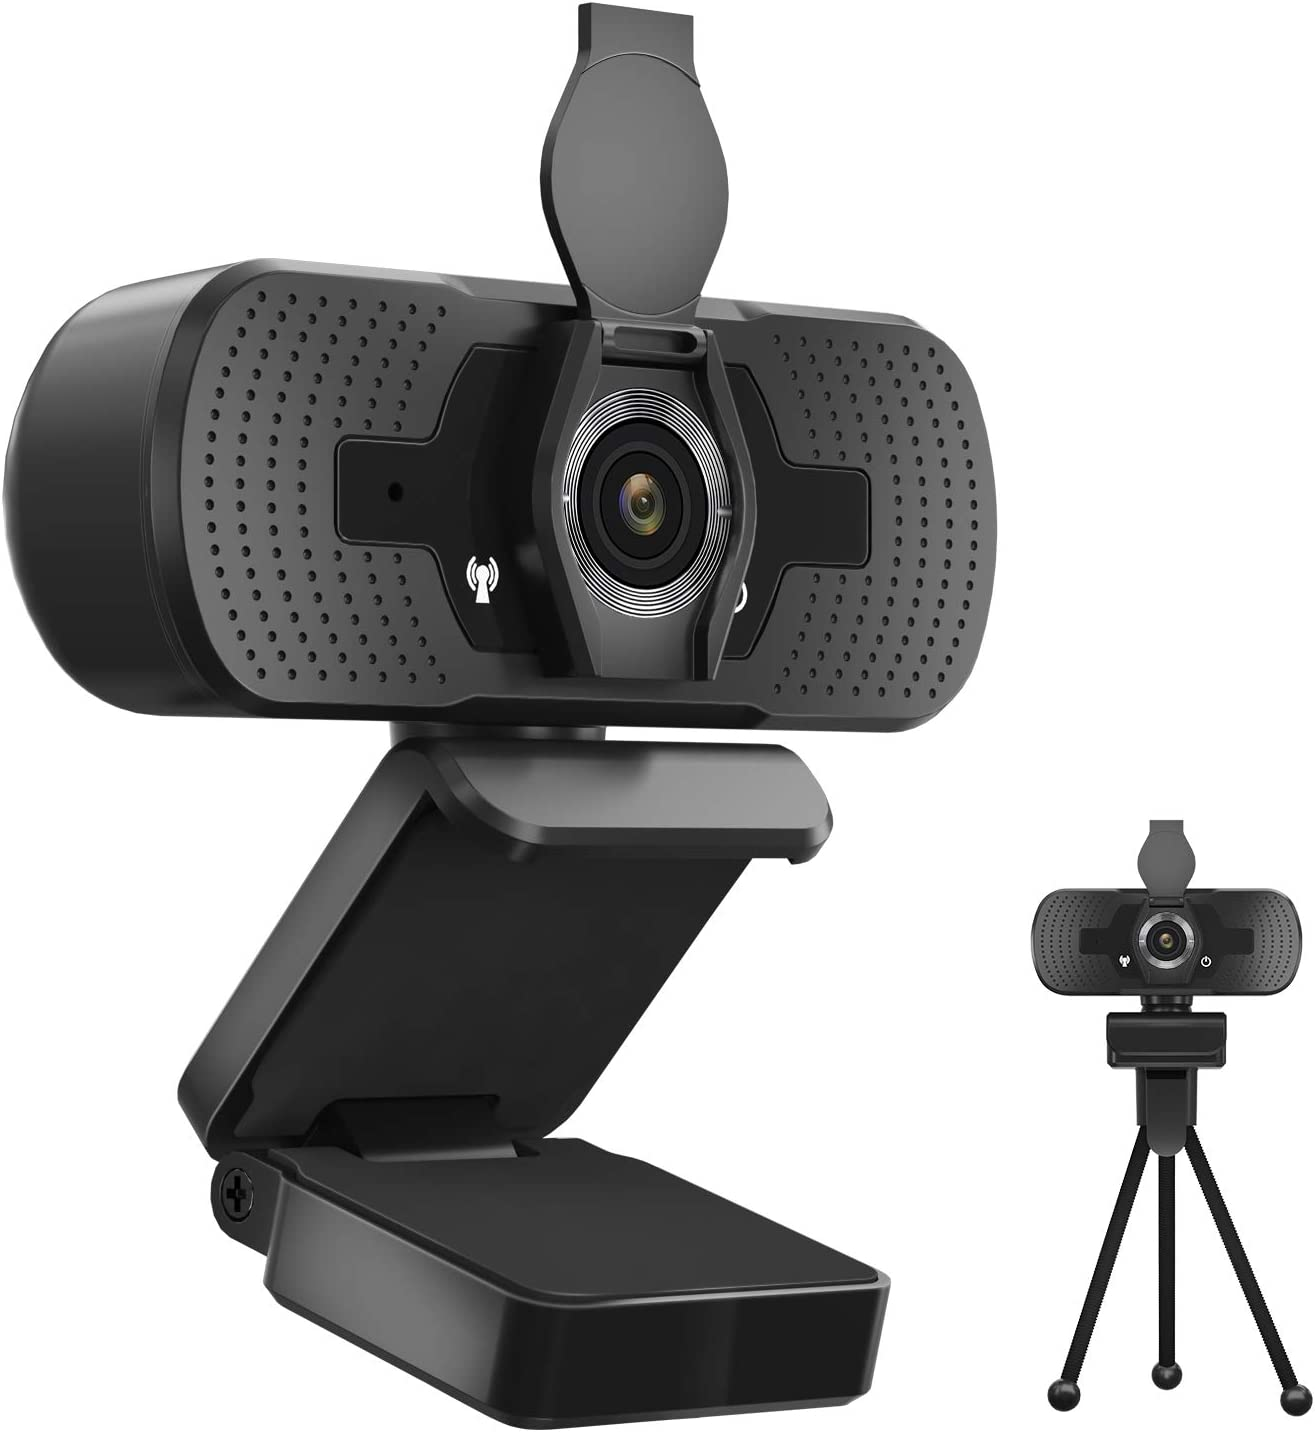 2020 1944P Webcam with Microphone Privacy Cover Tripod, 5 MP Desktop Laptop Computer Web Camera, for Windows Mac OS, Plug and Play, for Zoom, YouTube, Skype, Video Call, Conference, Online Classes